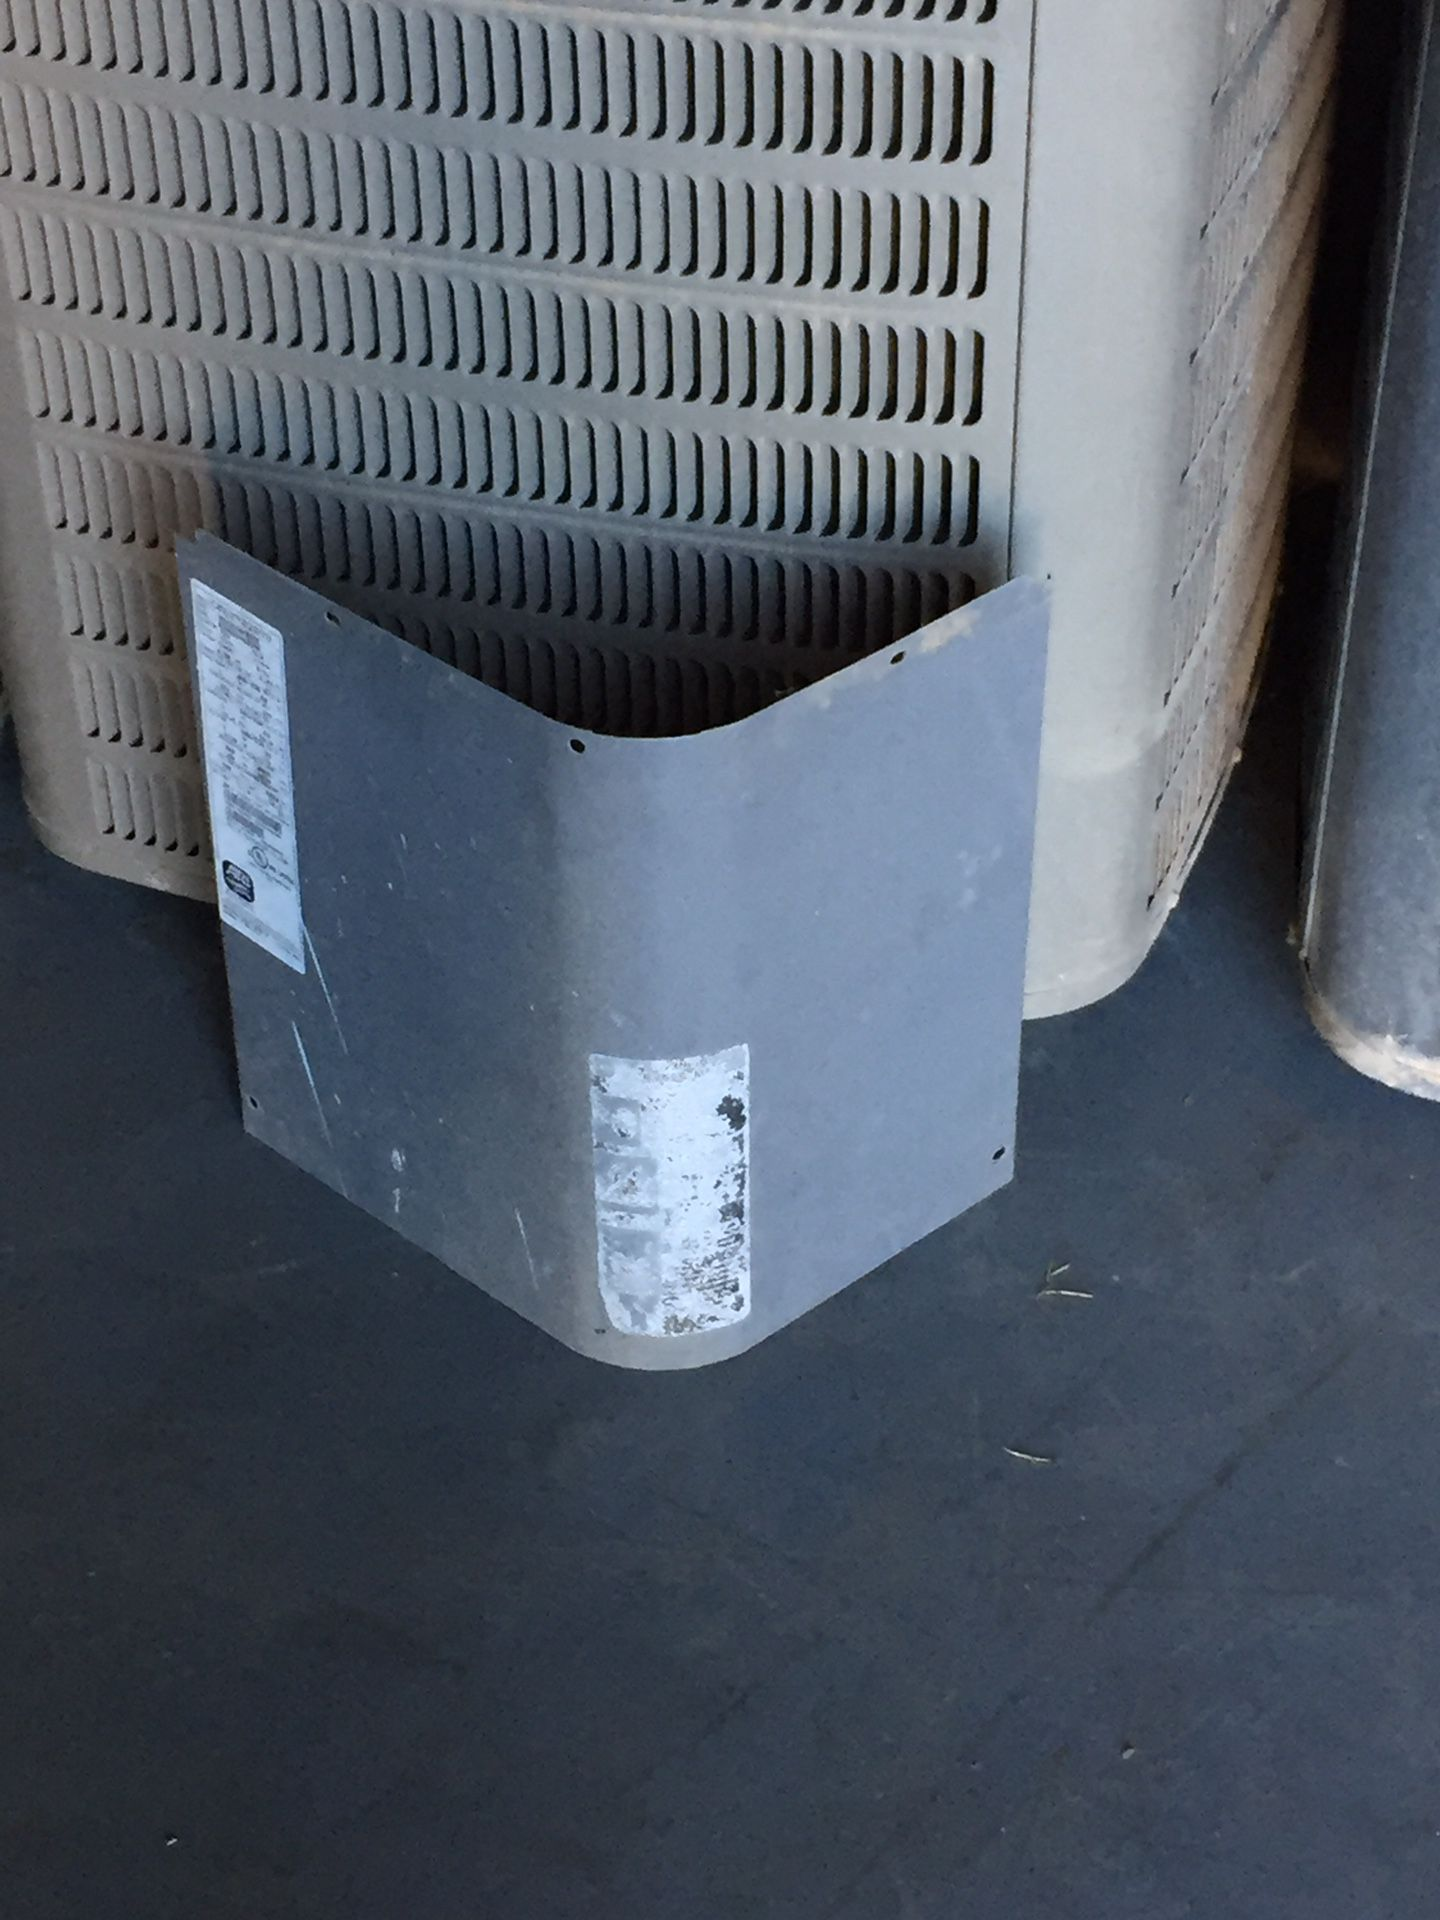 Tempstar AC condenser cover plate